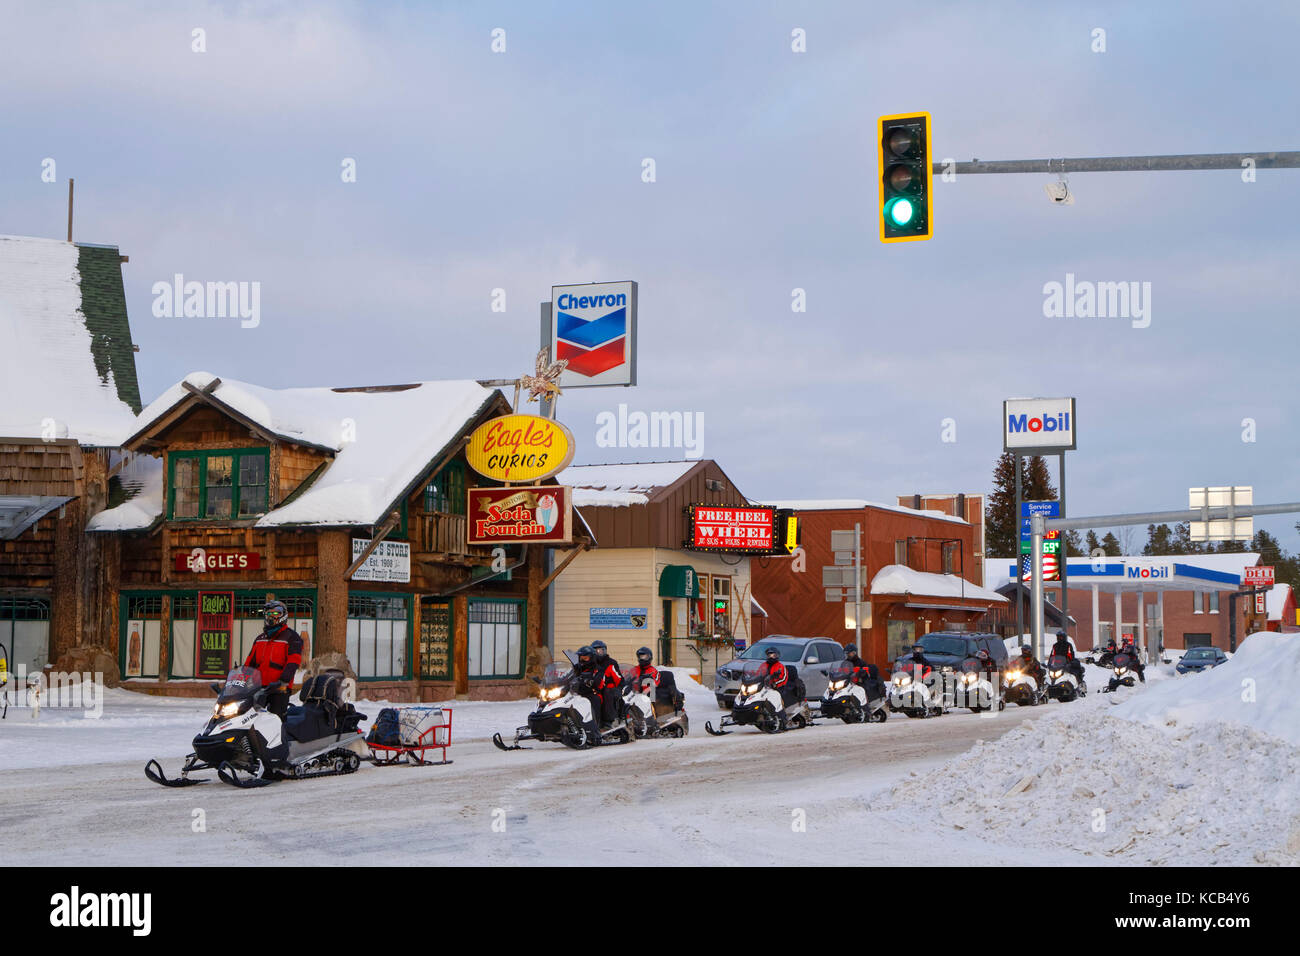 WEST YELLOWSTONE, MONTANA, January 26, 2017 : During the winter, visitors often access the Yellowstone National - Stock Image